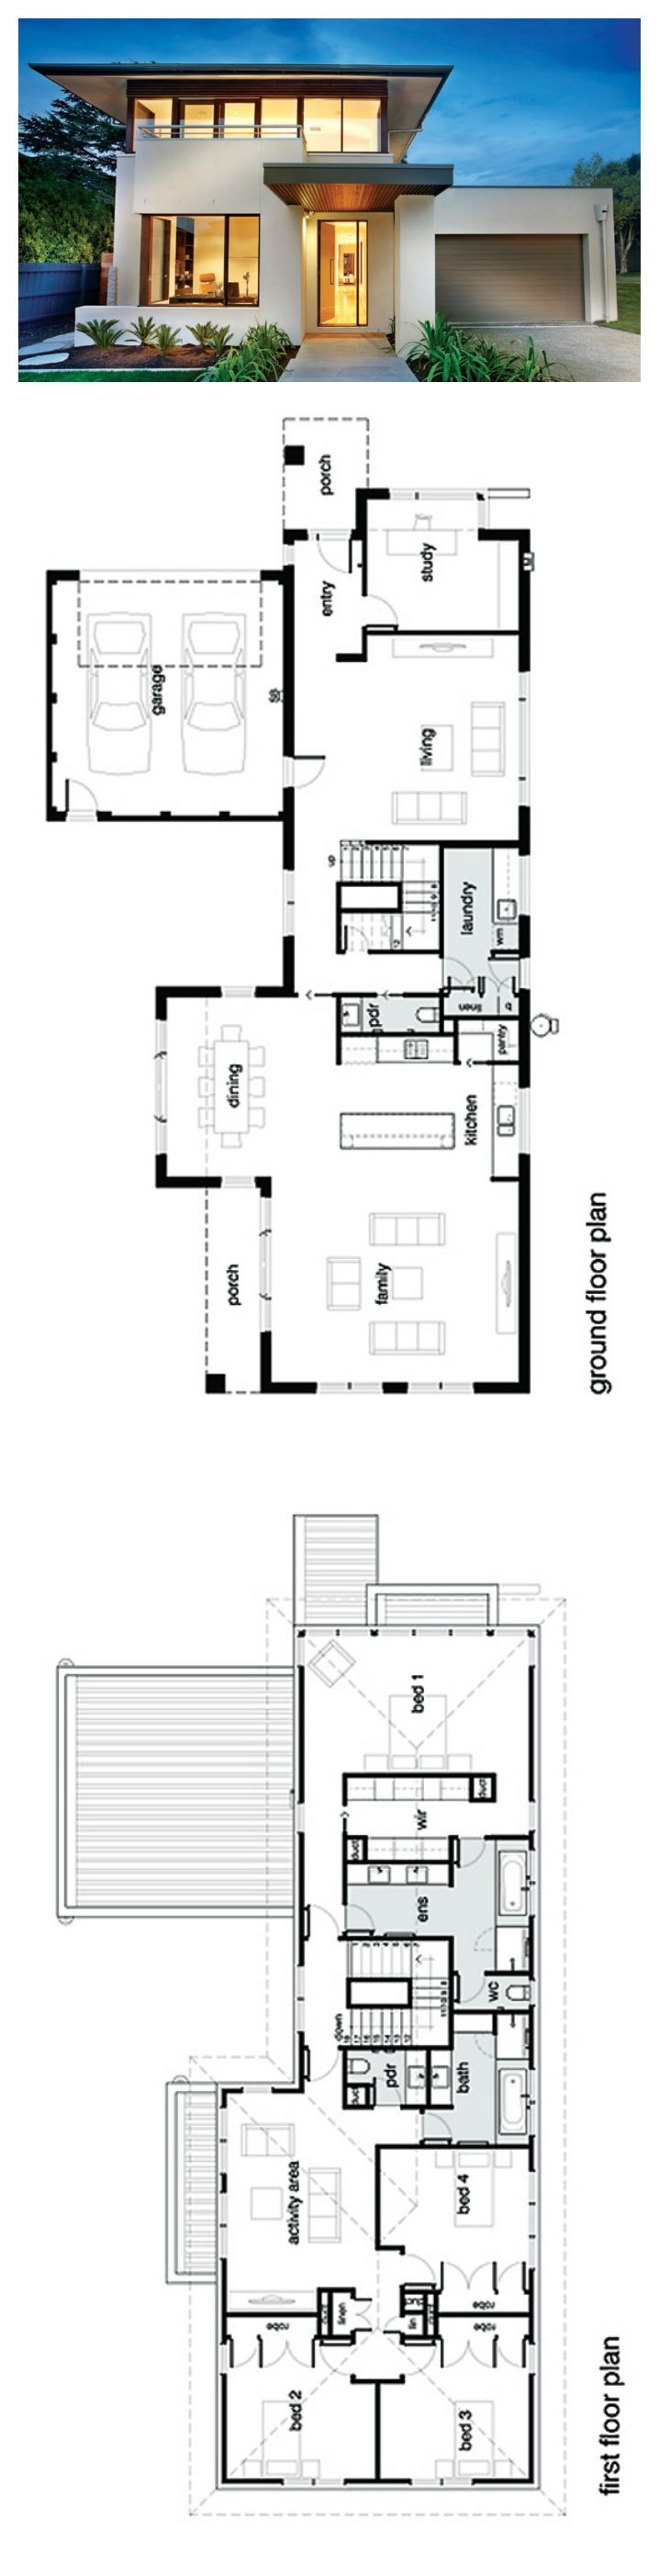 The 25 best ideas about modern house plans on pinterest Contemporary house blueprints